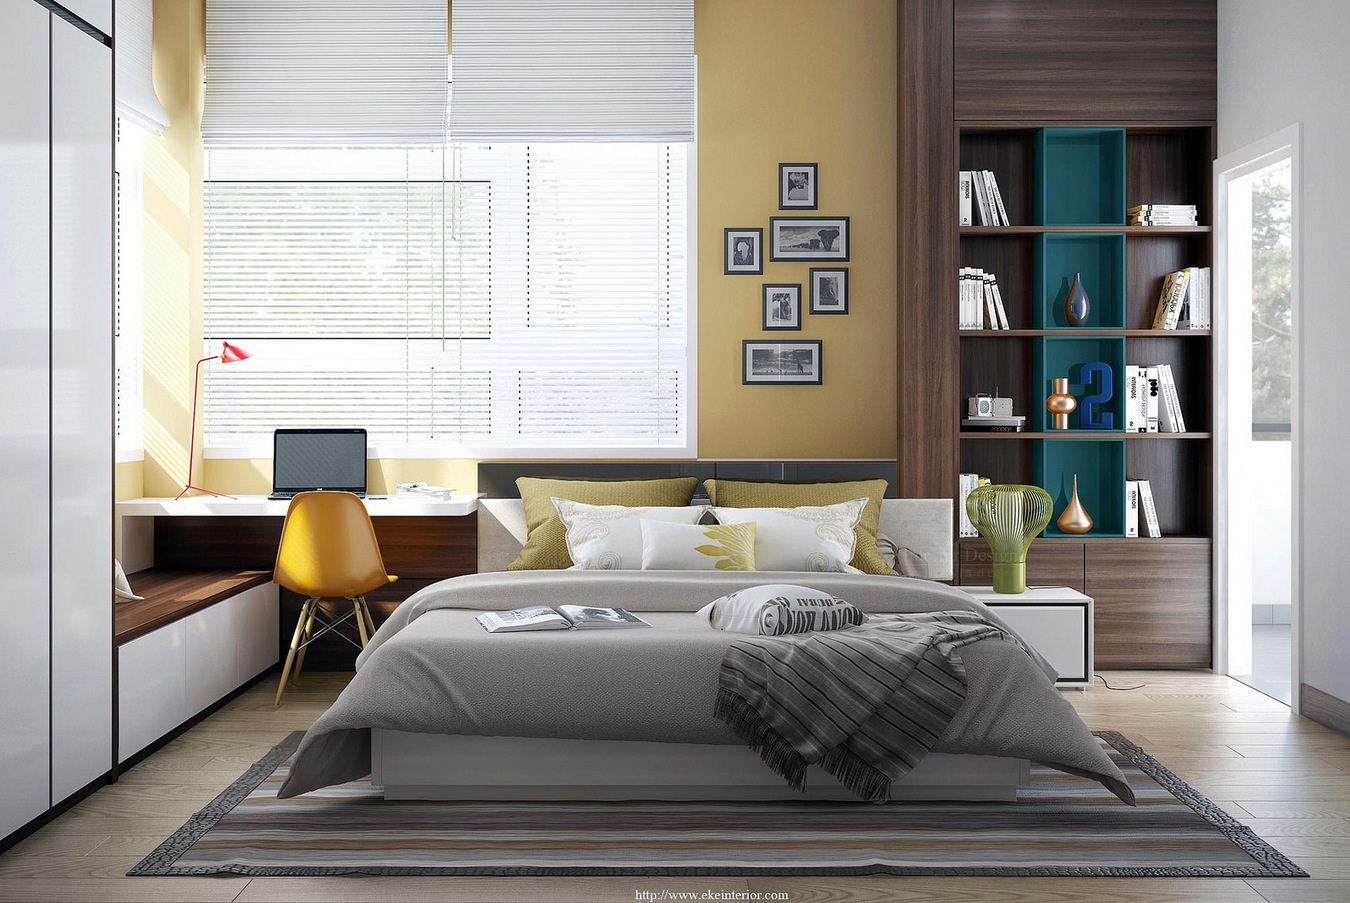 20 modern bedroom designs - Designing Bed